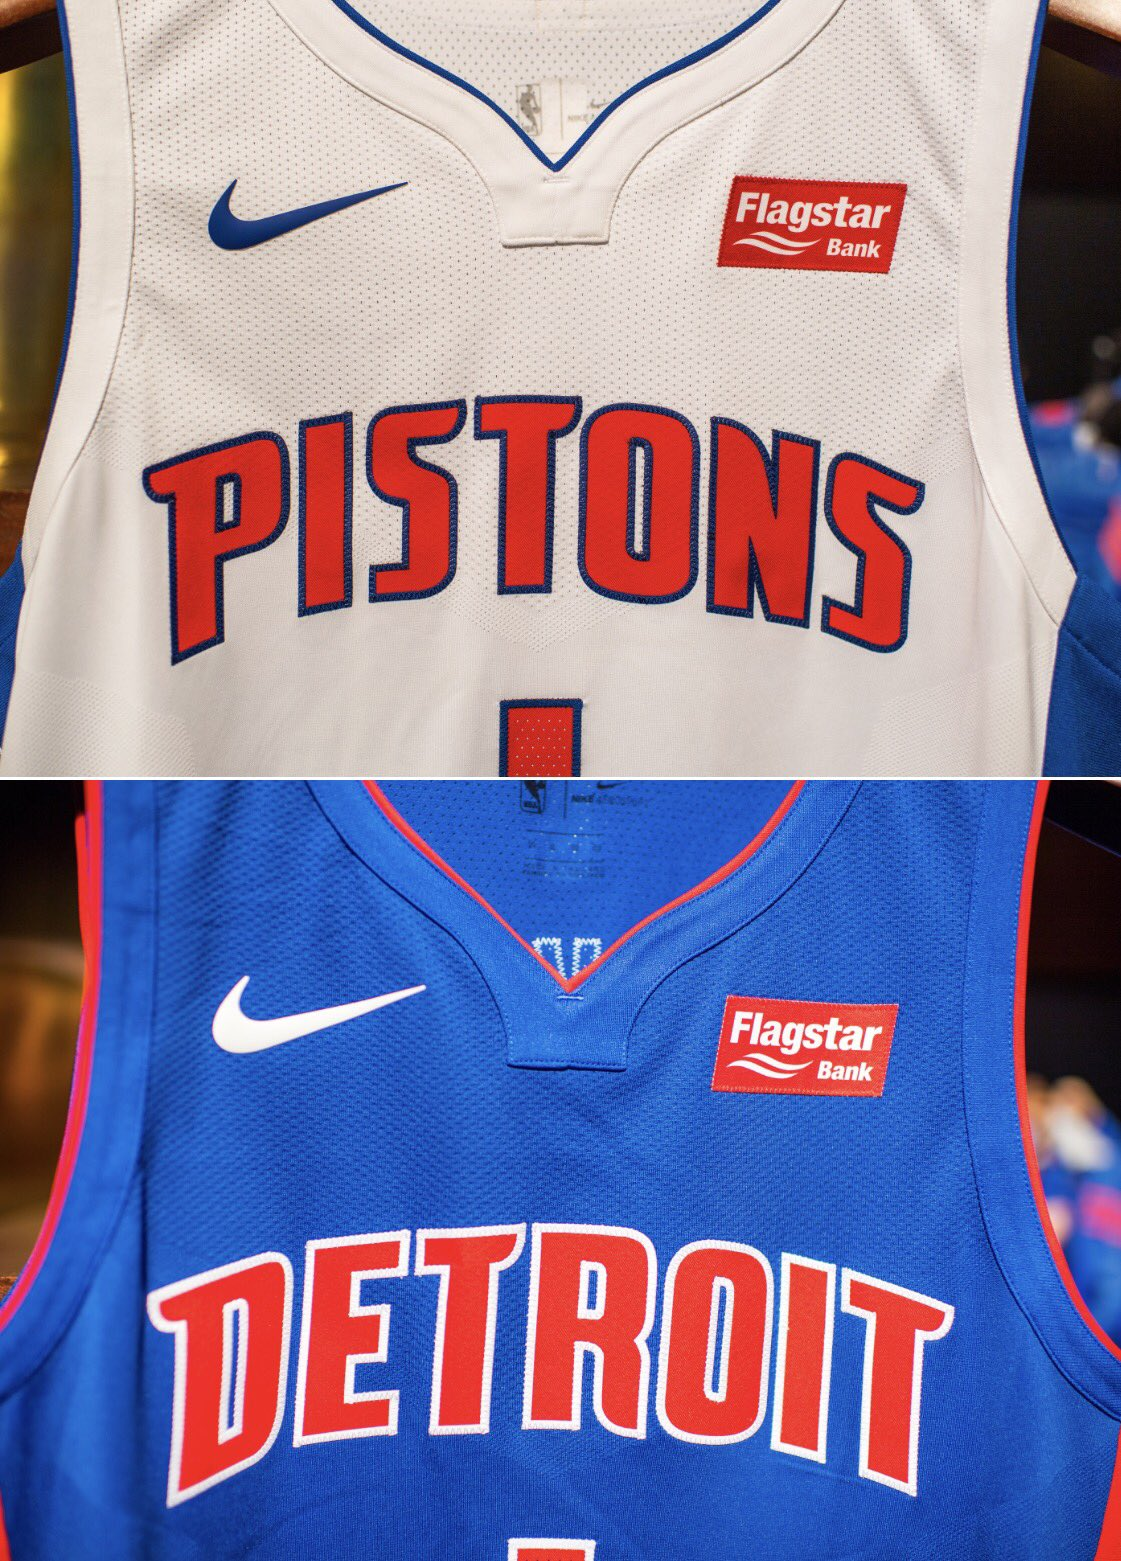 8236f4e82 The Detroit Pistons signed a deal with Flagstar Bank for an undisclosed  amount of money to wear their logo on the right chest of their new Nike  jerseys